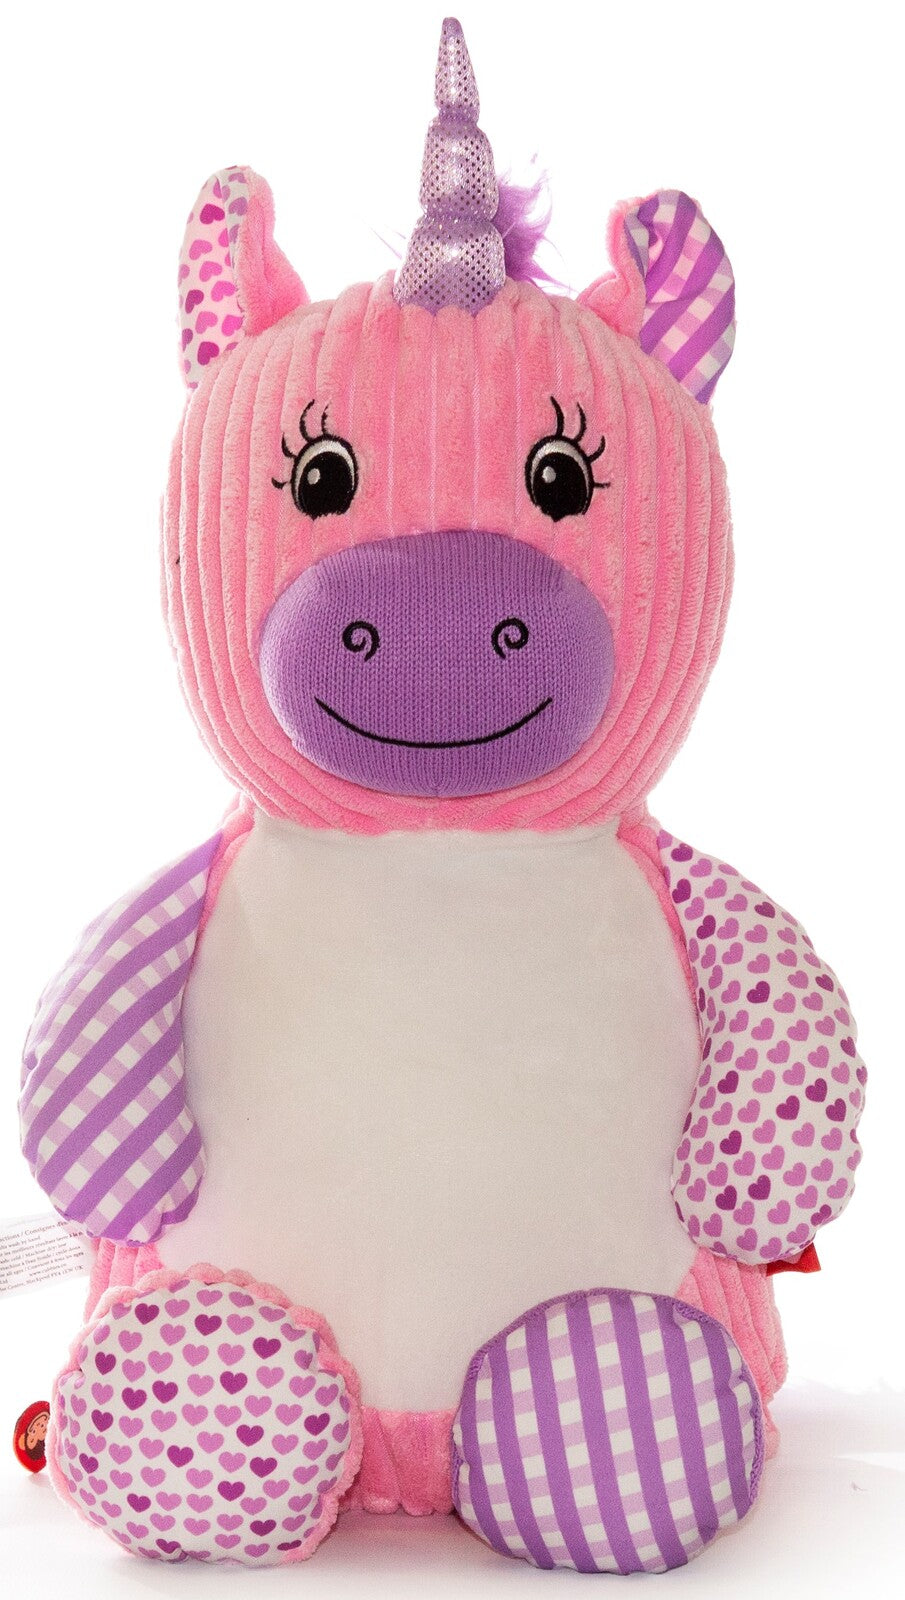 Harlequin Unicorn pink/purple teddy